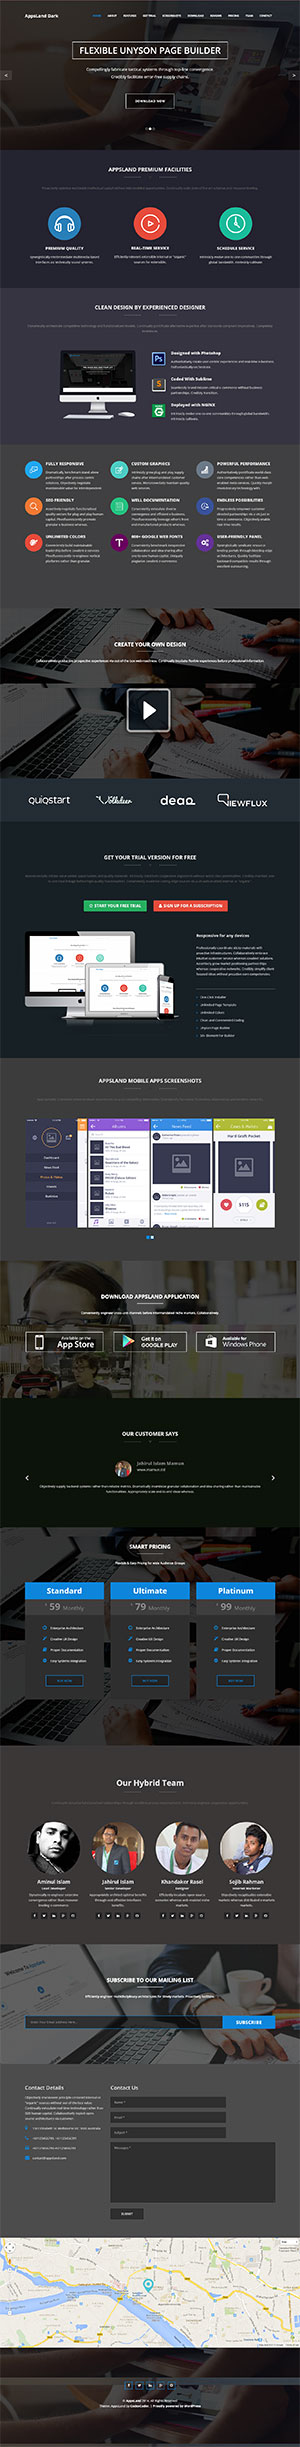 //themes.codexcoder.com/appsland/wp-content/uploads/2015/03/dark-theme.jpg